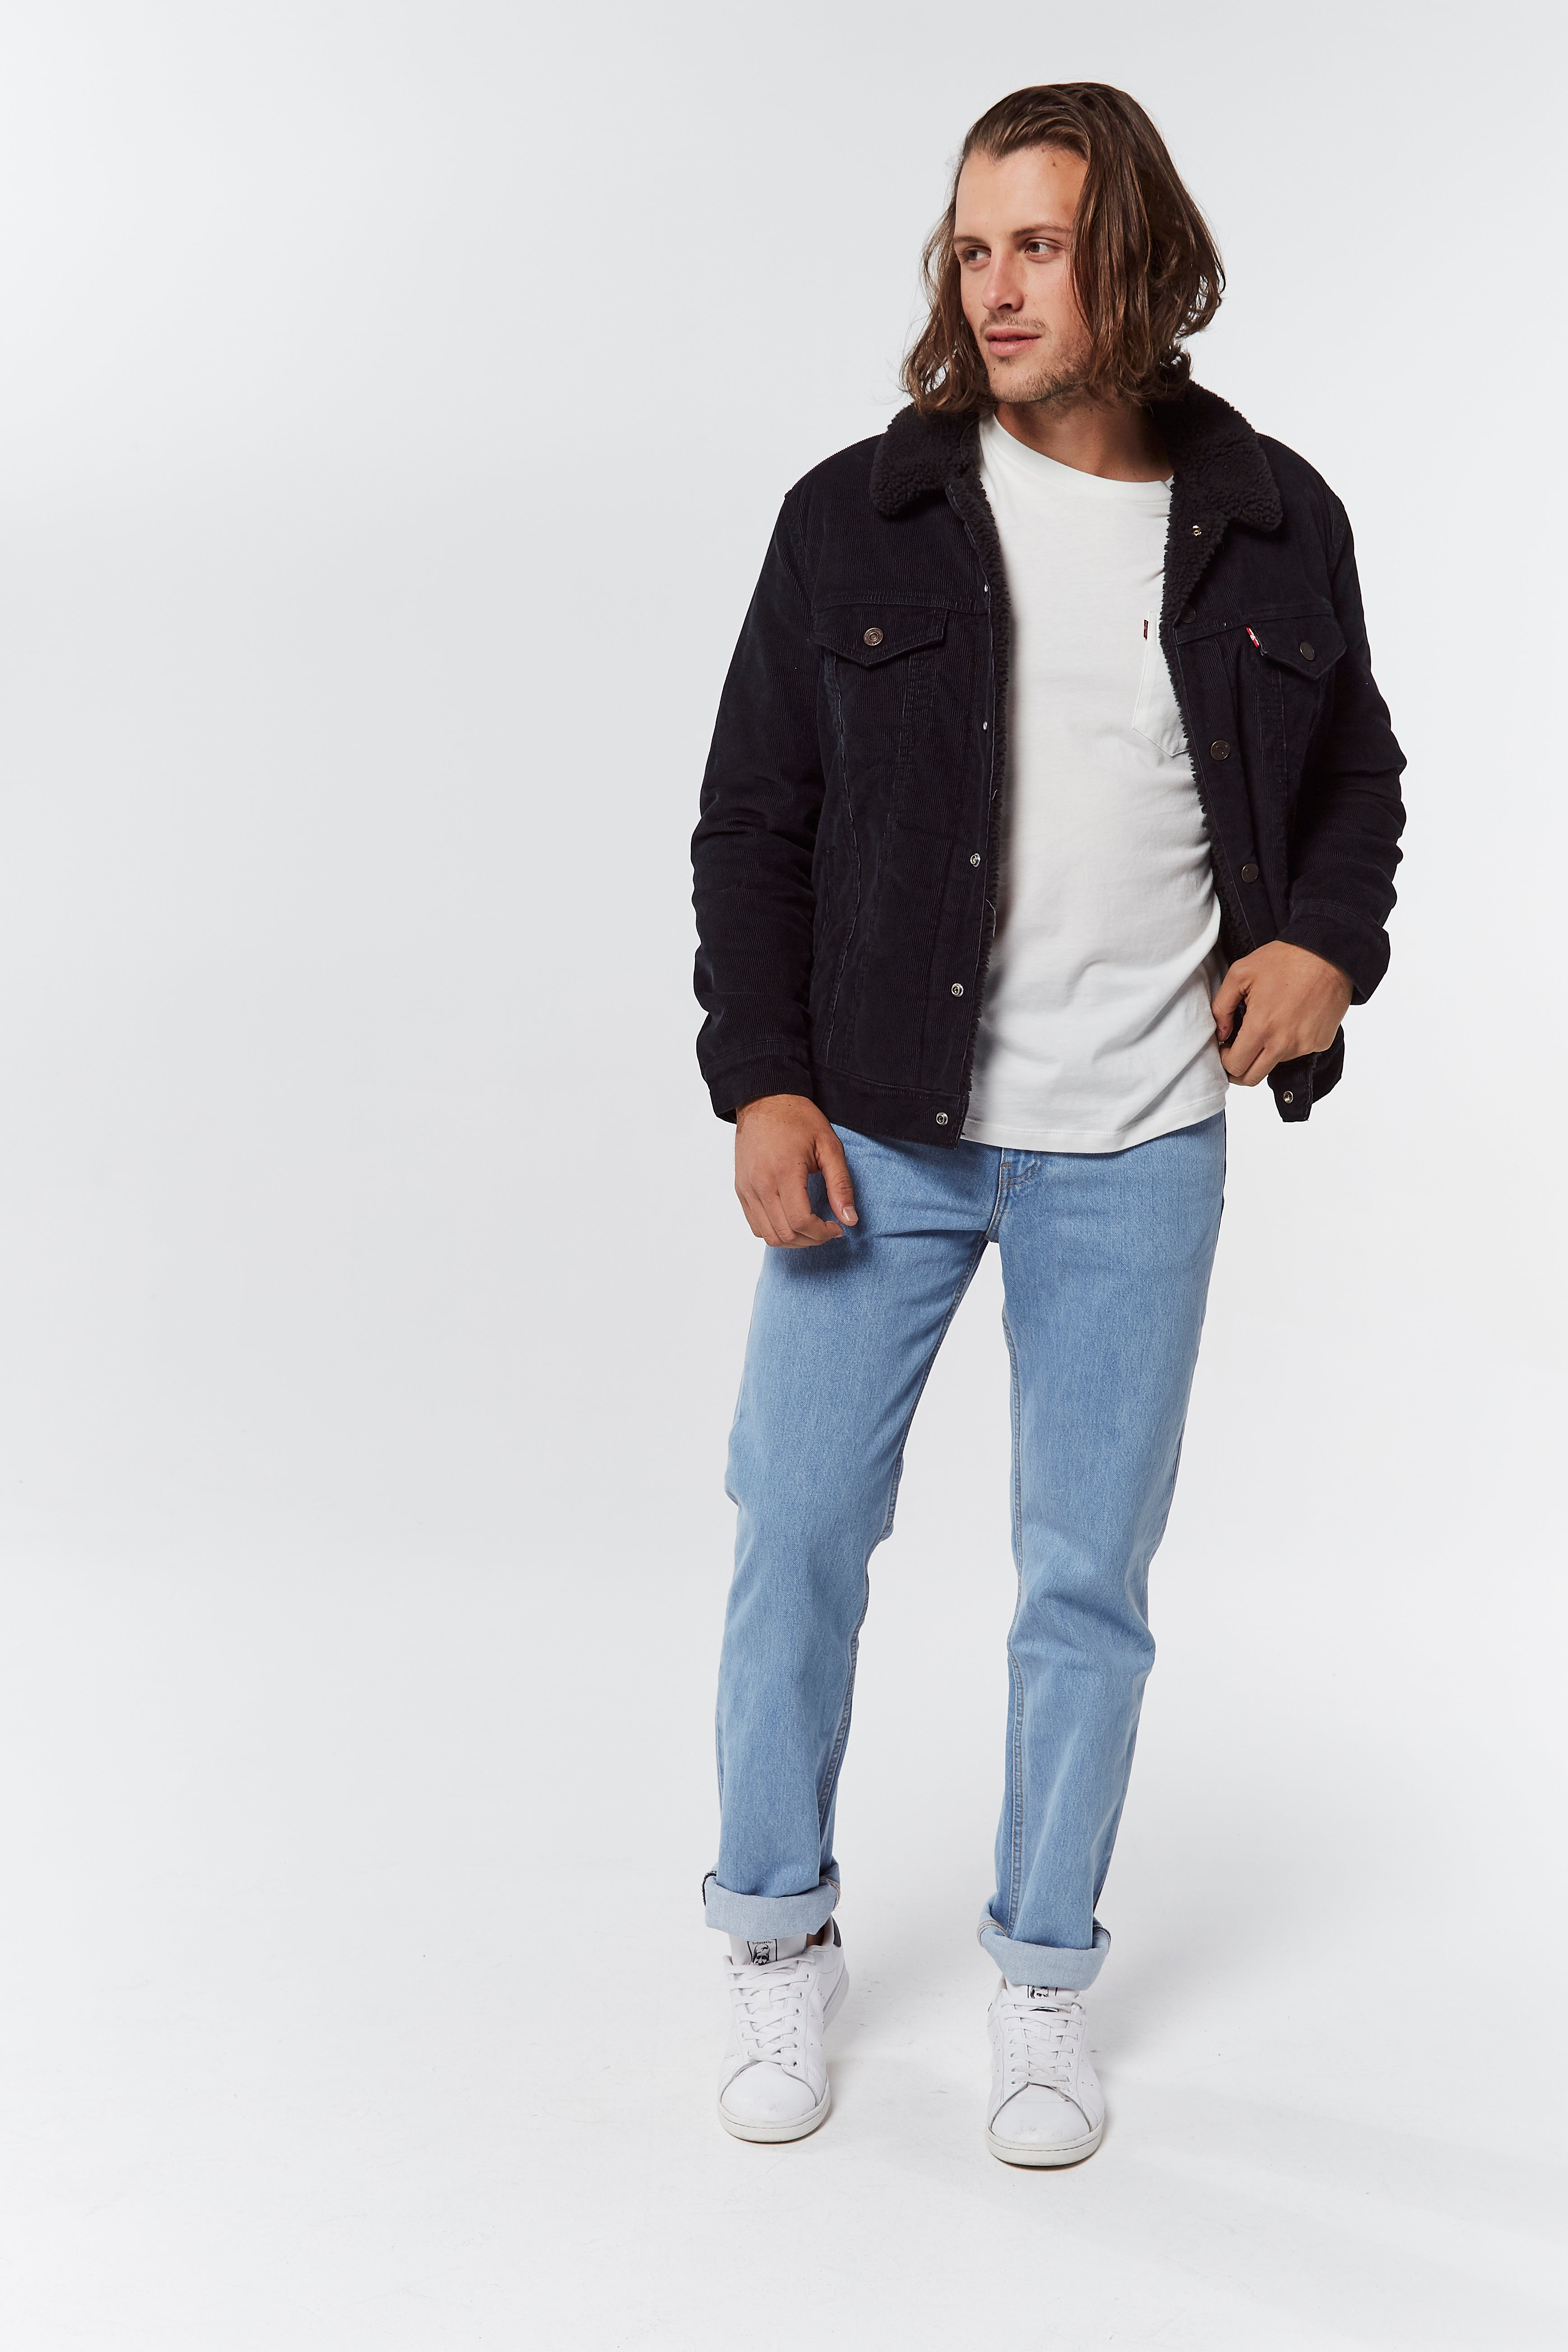 Levi's Mens 516 Straight Fit Jeans - Superwash